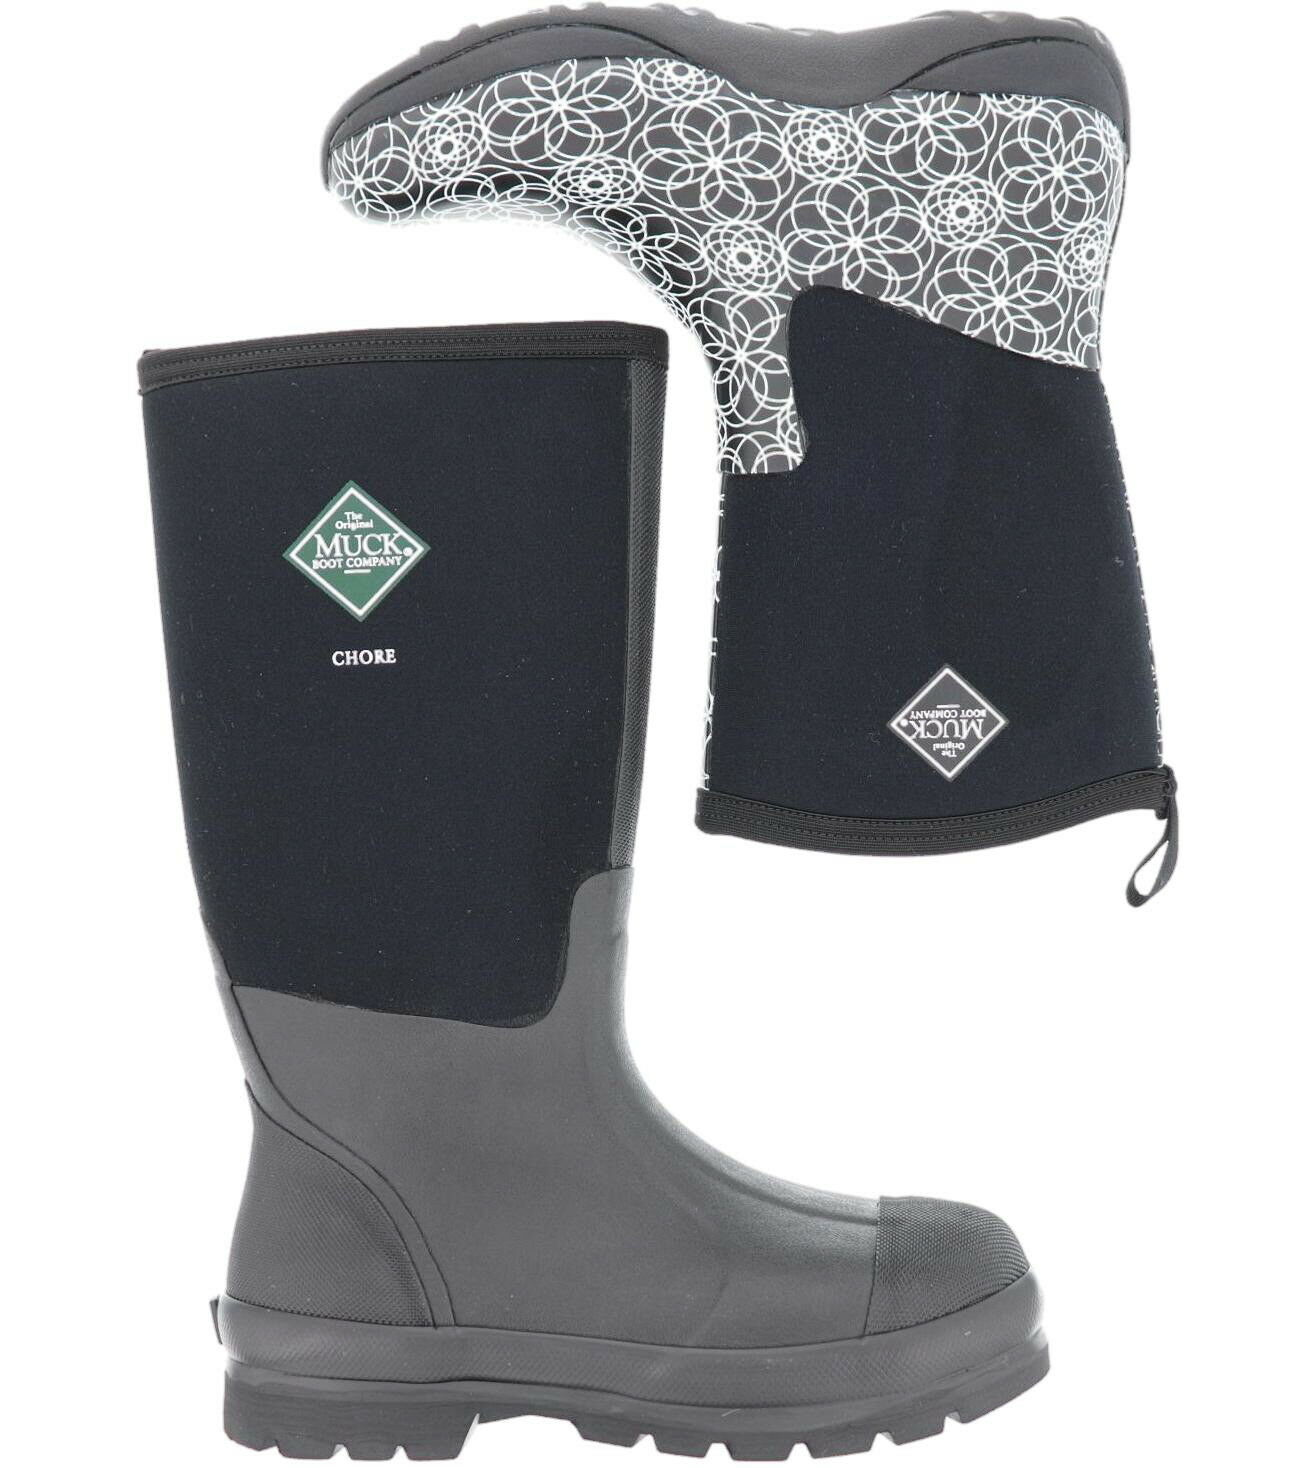 Muck Boots for Men's Women's Chore Classic Mid Rubber/Arctic Weekend Swirl print